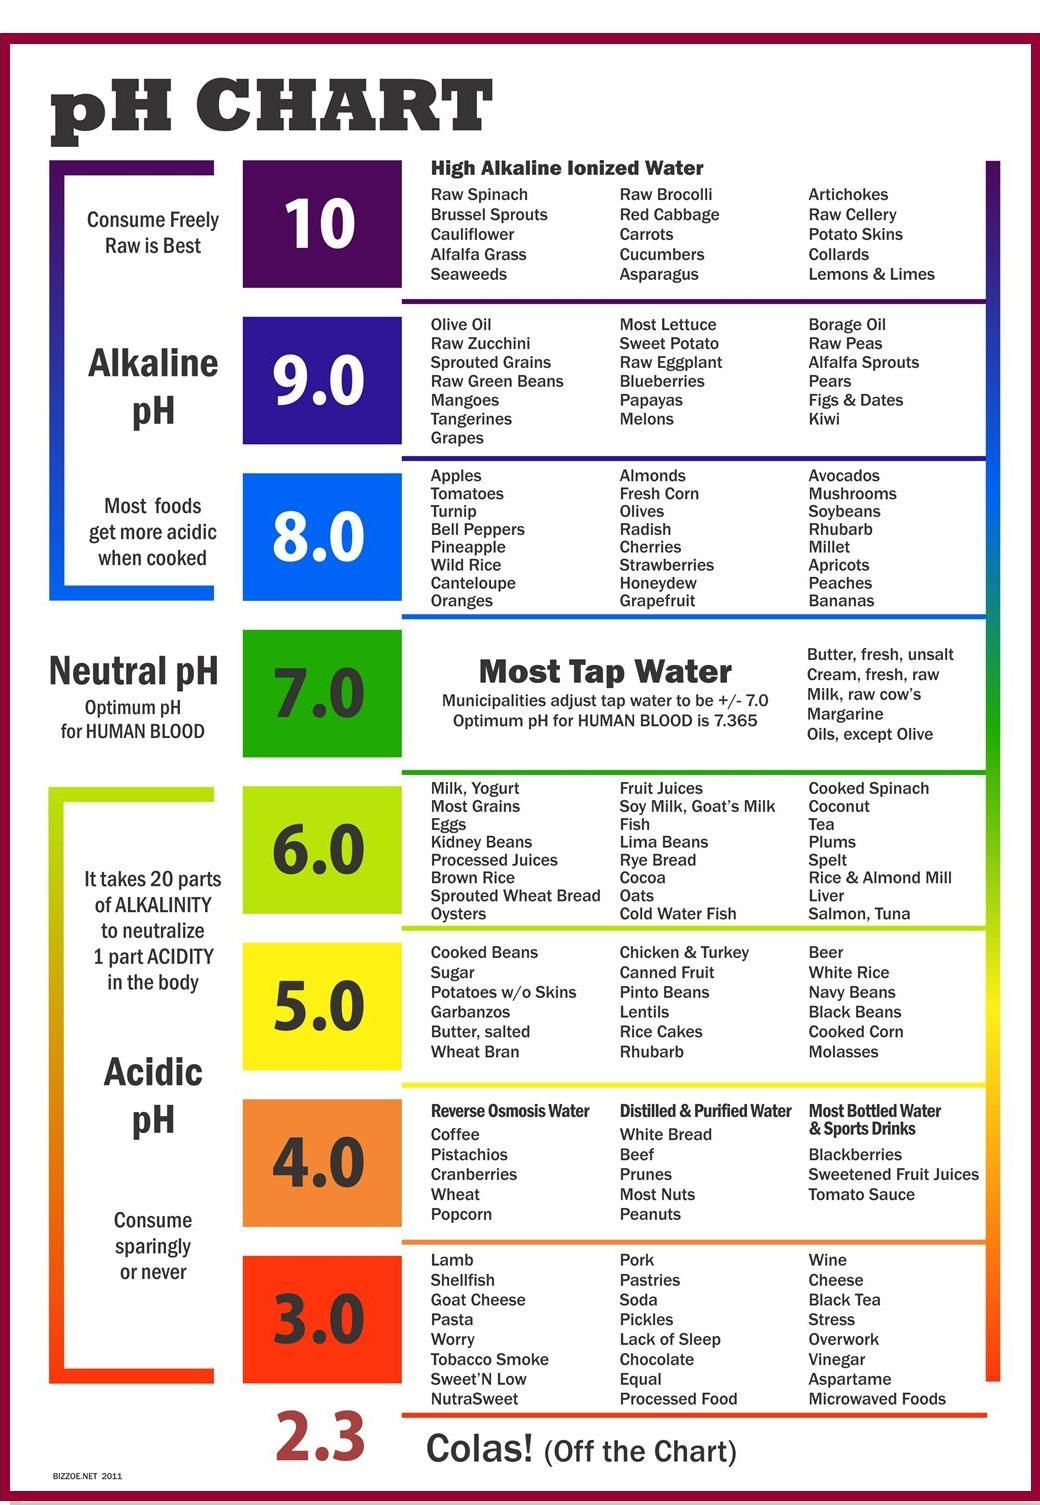 acid alkaline food chart: Ph chart ph alkaline diet and food charts